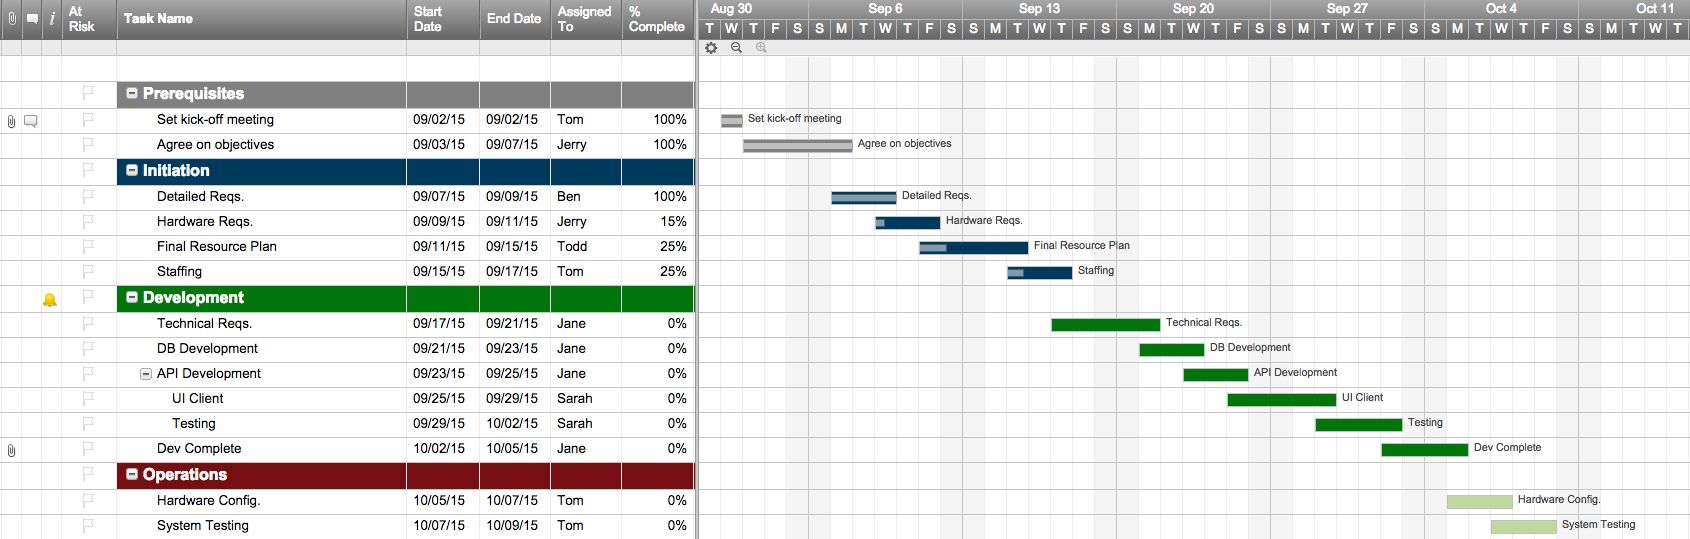 Monthly Project Timeline Template Excel Use An Excel File To Create Reports That All Emp Project Timeline Template Action Plan Template Marketing Plan Template